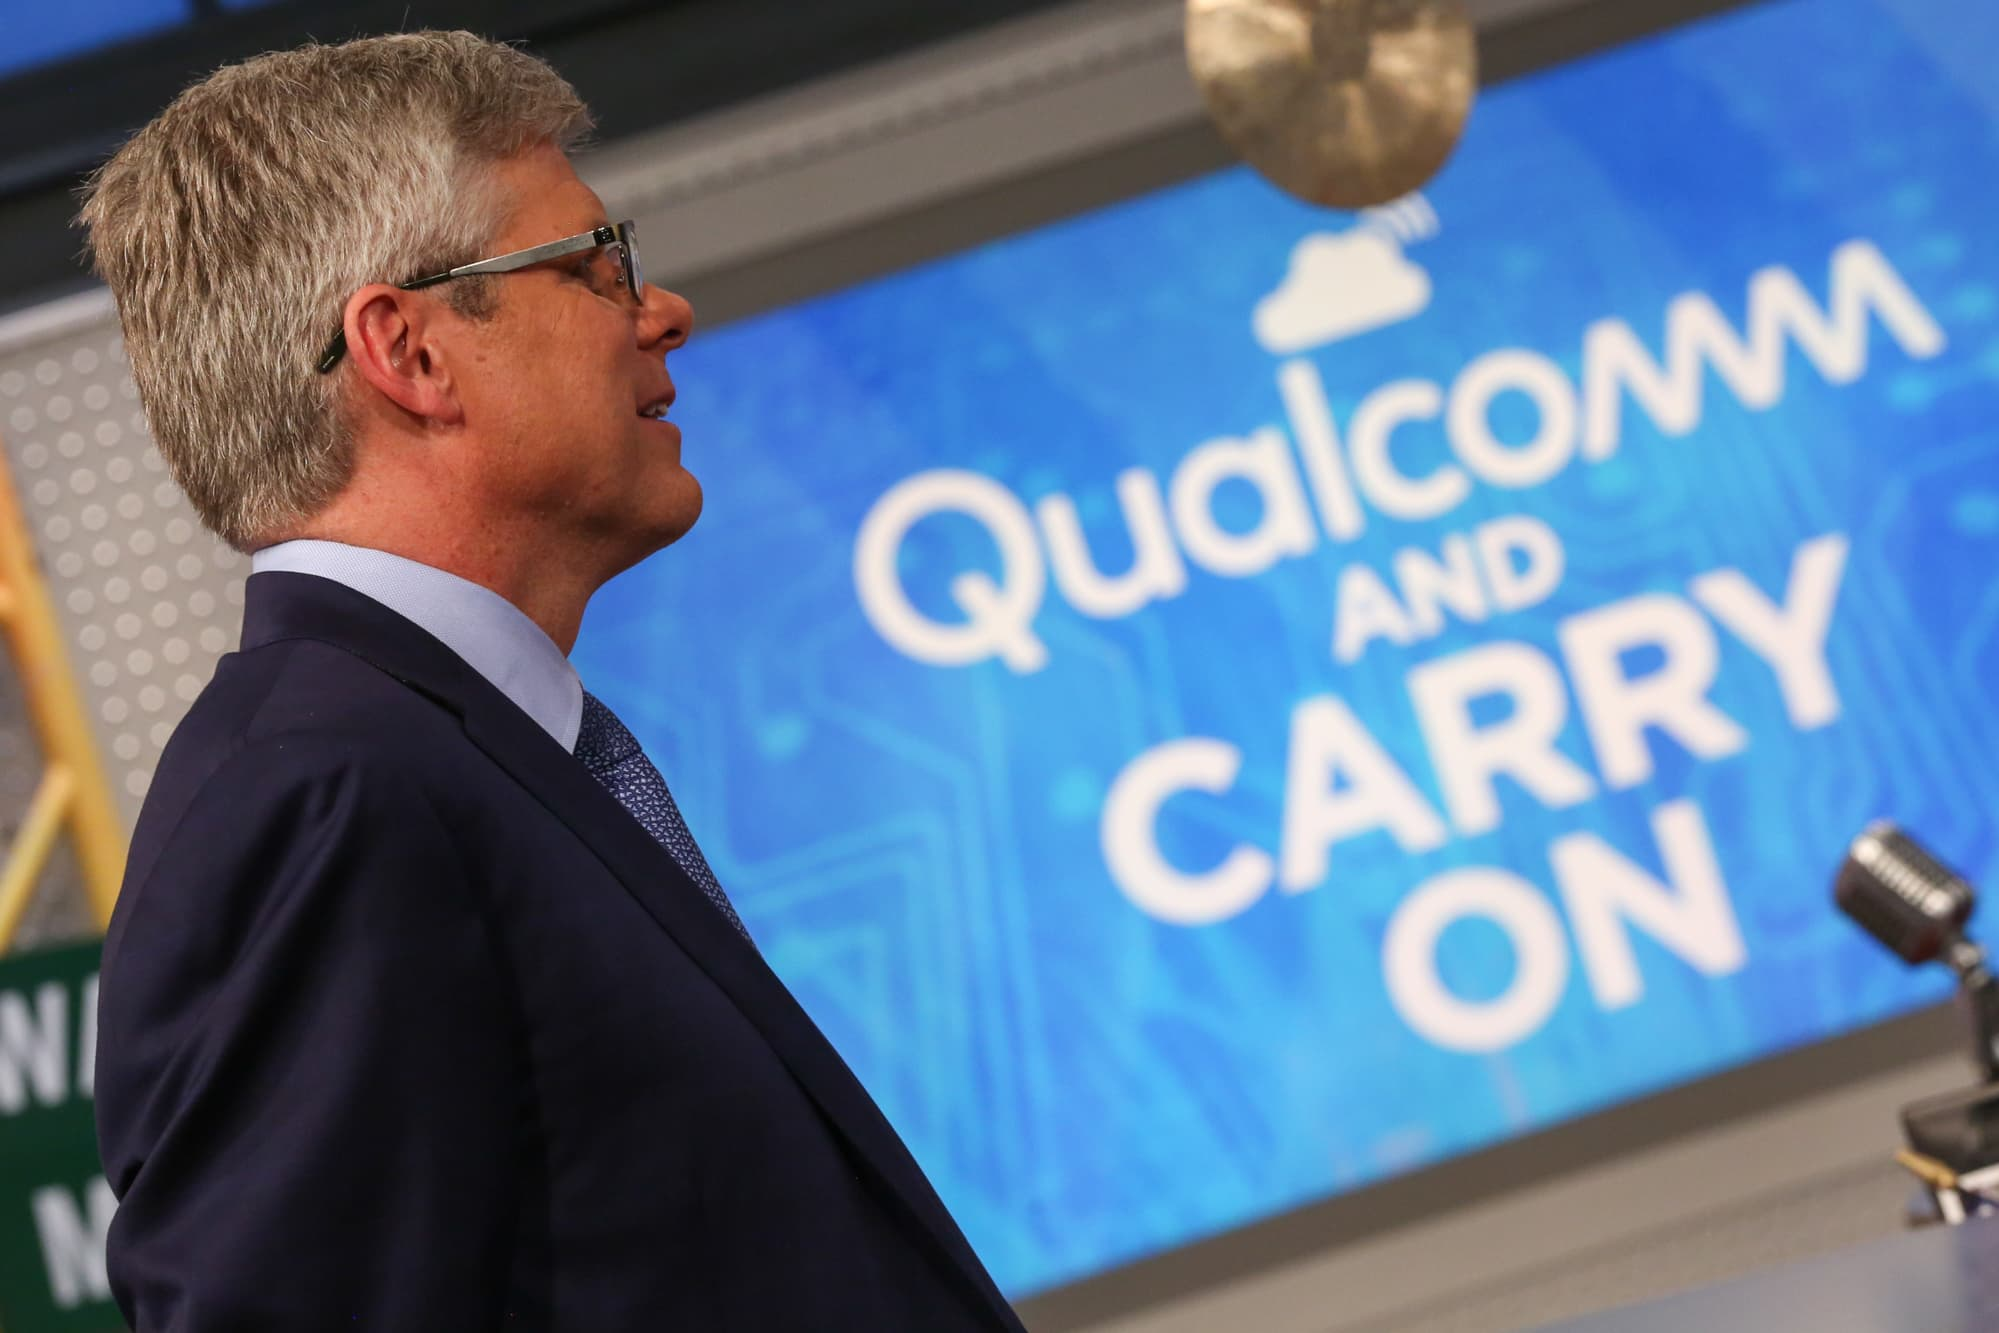 Stocks making the biggest moves midday: Qualcomm, Sprint, Tesla, Del Frisco's & more